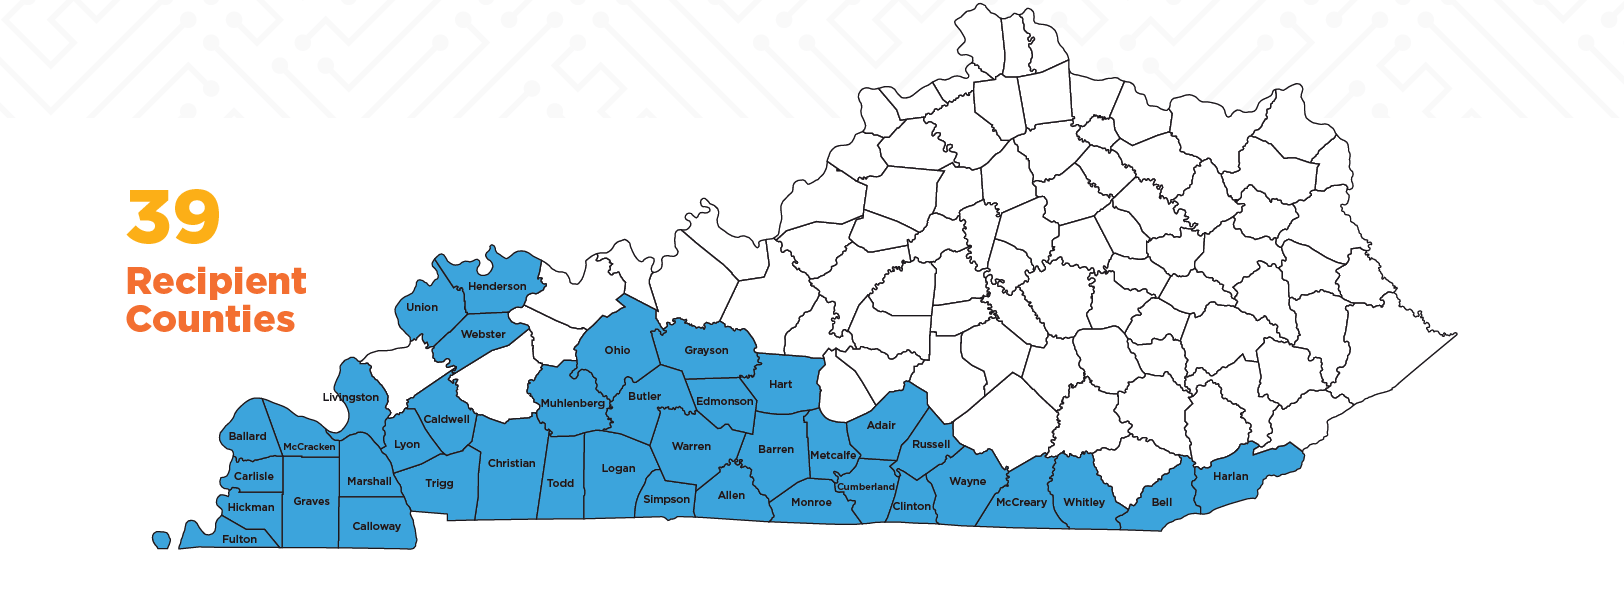 KY TVA Counties Recipient Map